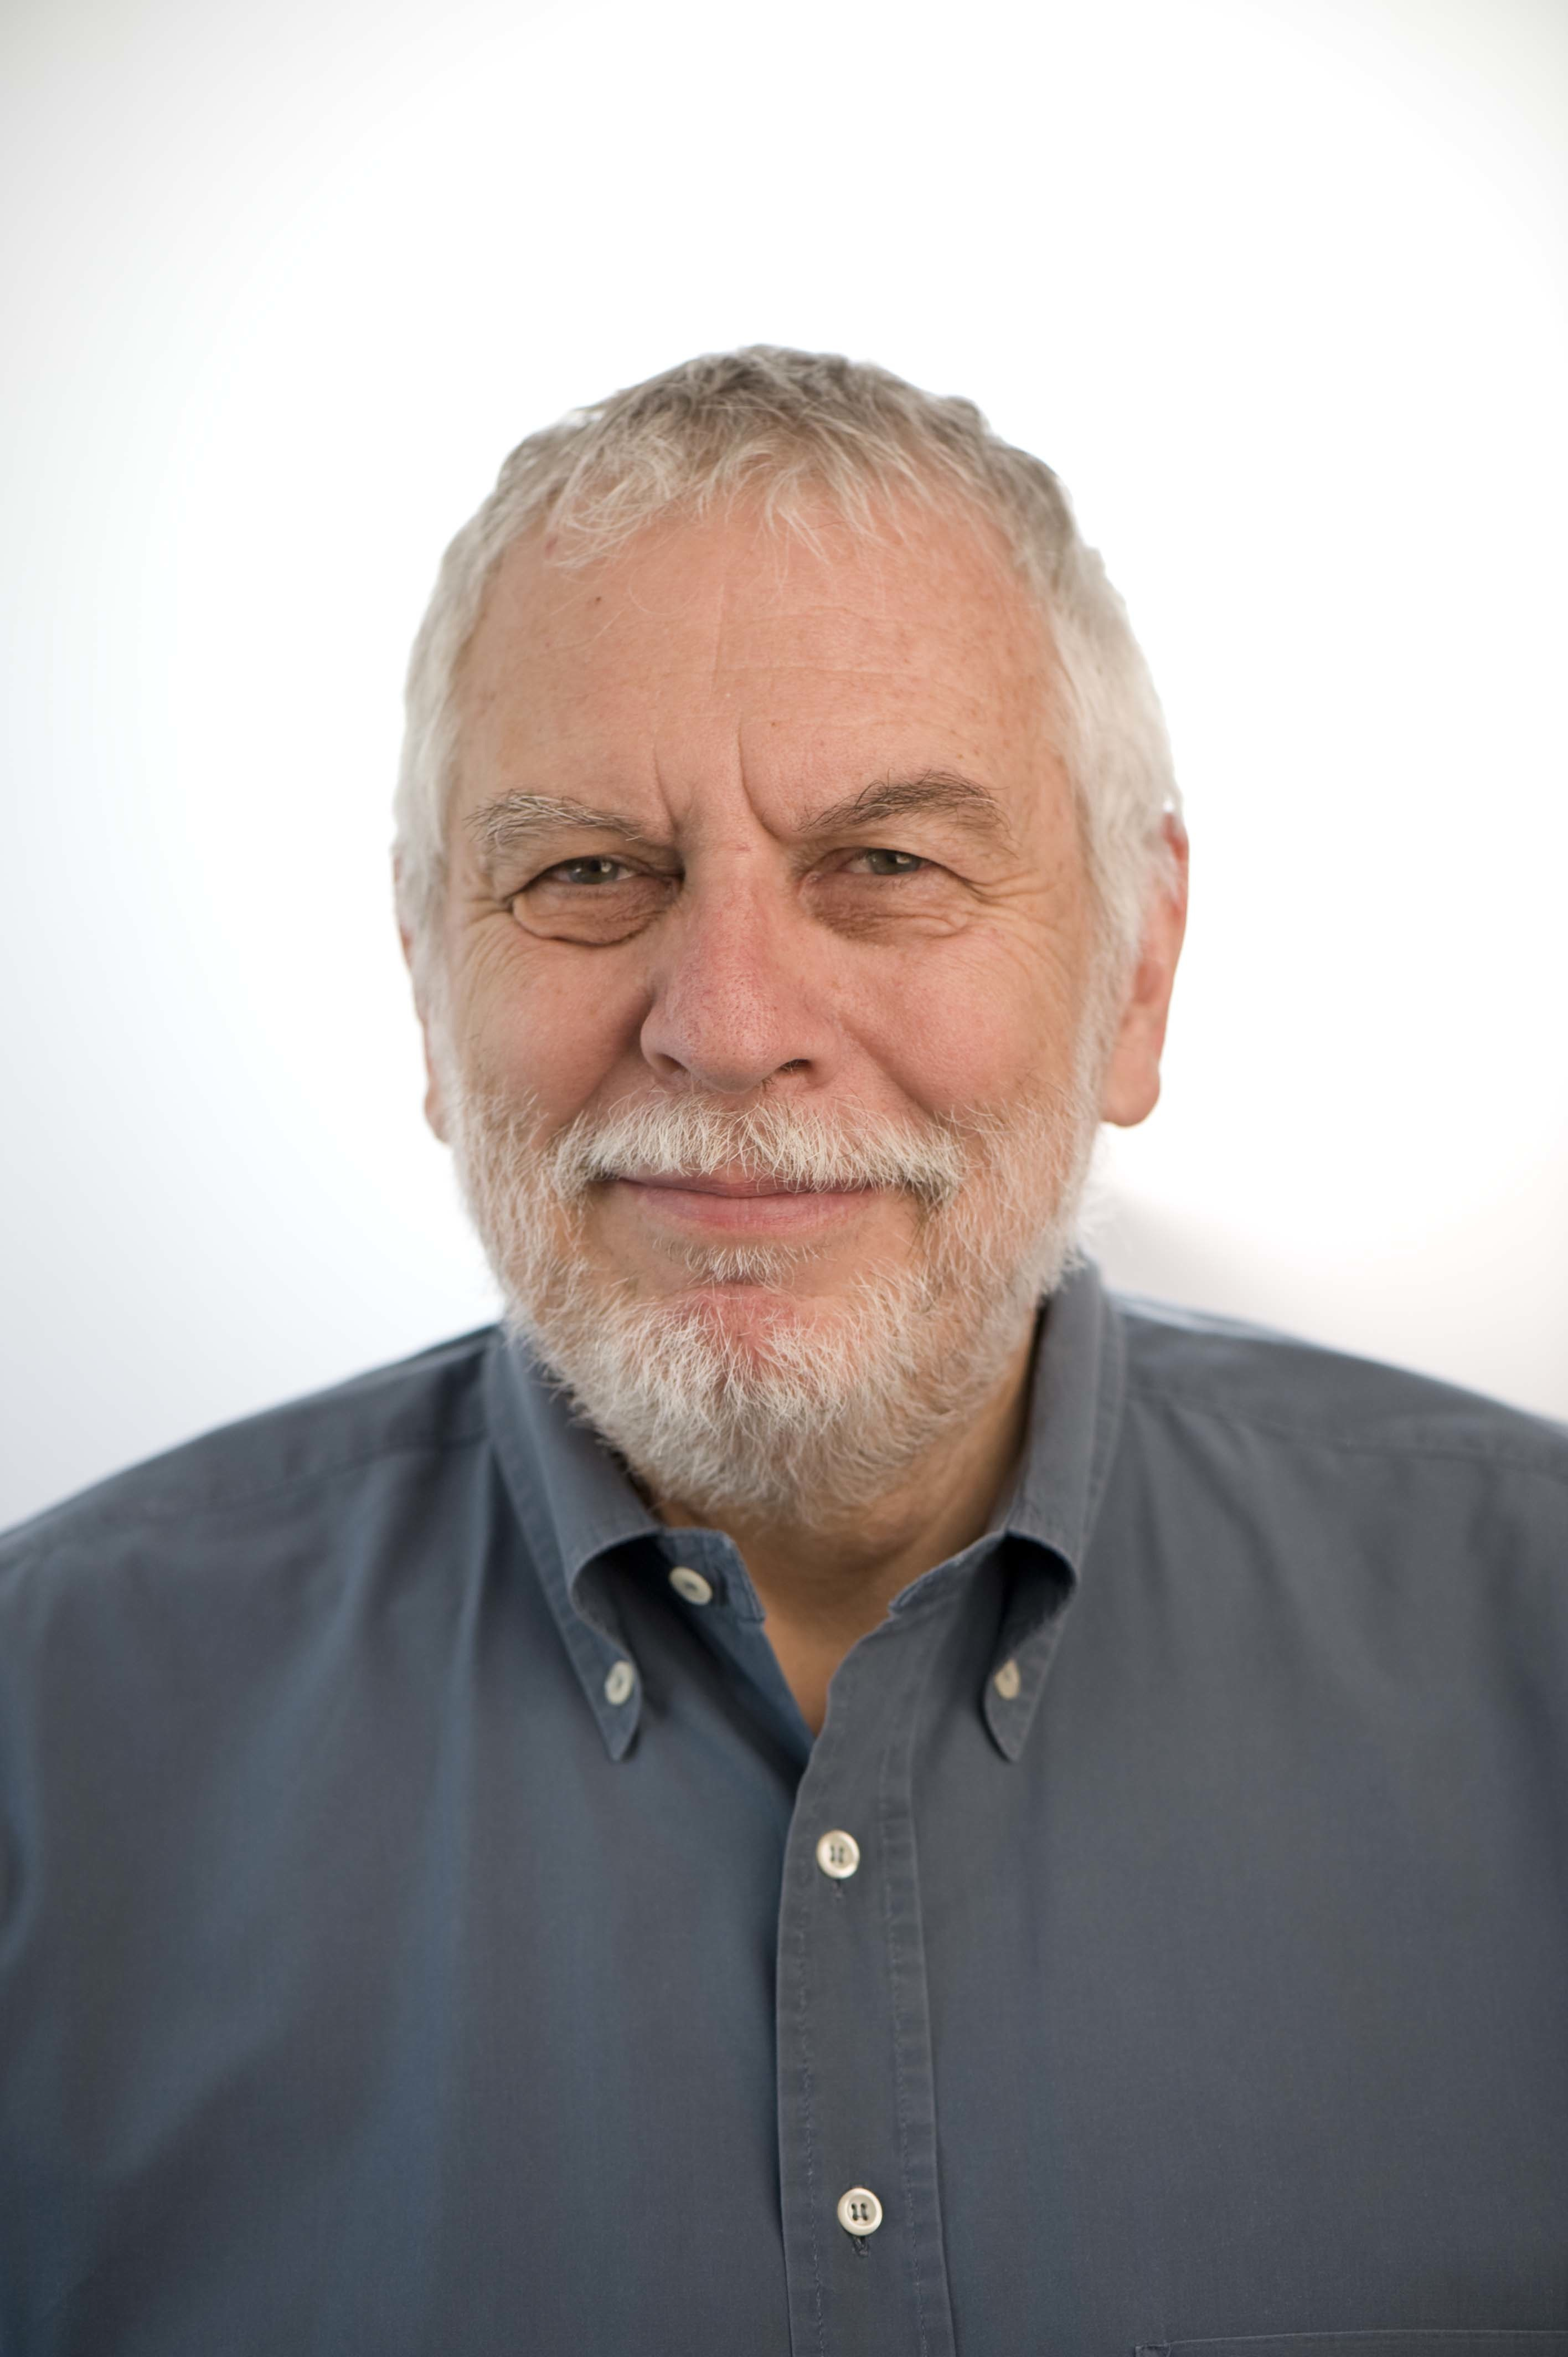 Nolan Bushnell's quote #4